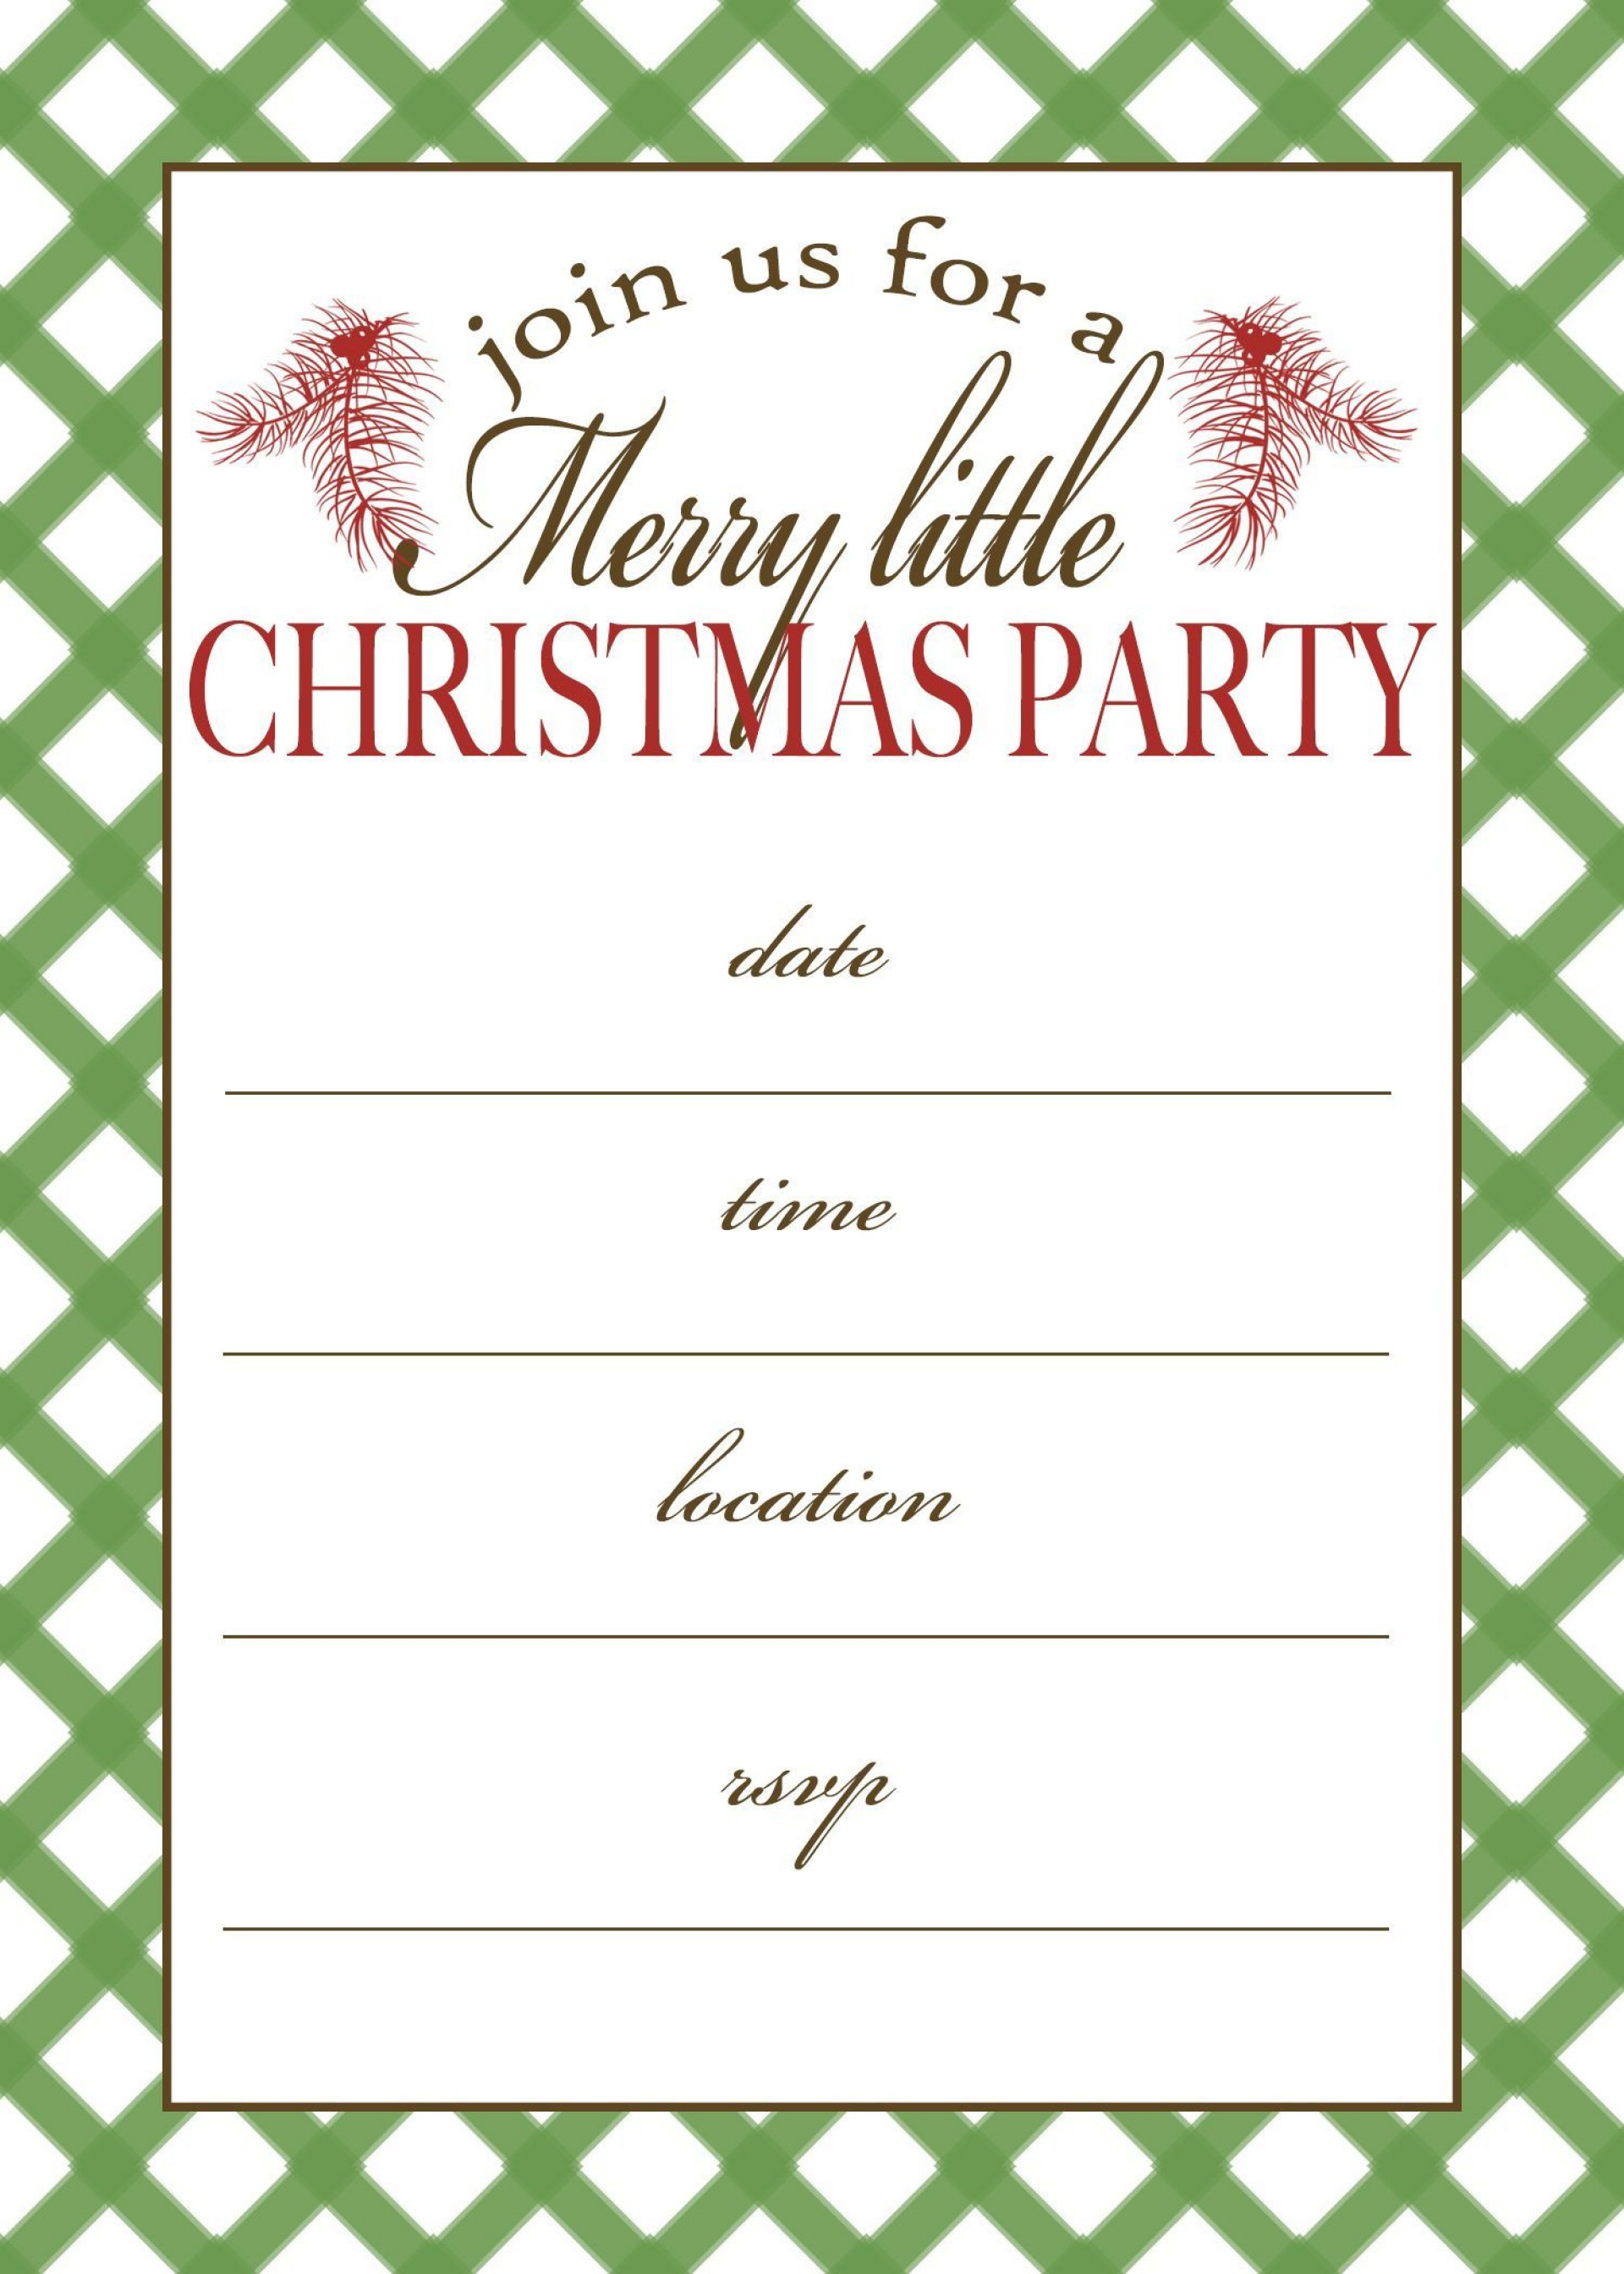 001 Incredible Christma Party Invitation Template Sample  Funny Free Download Word Card1920